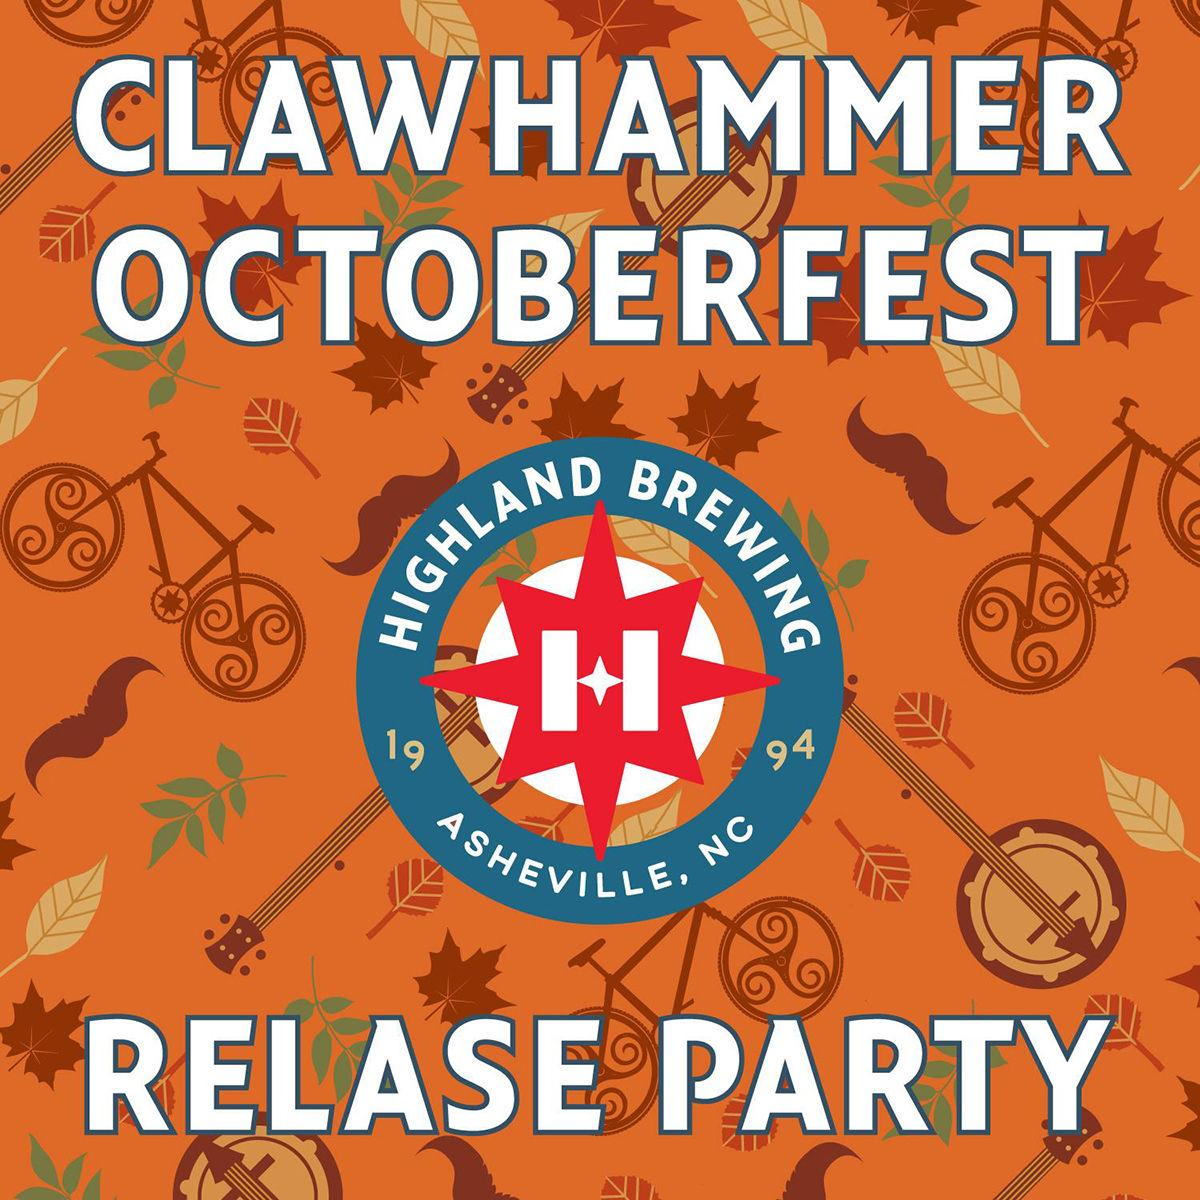 Highland Clawhammer release party Aug. 9